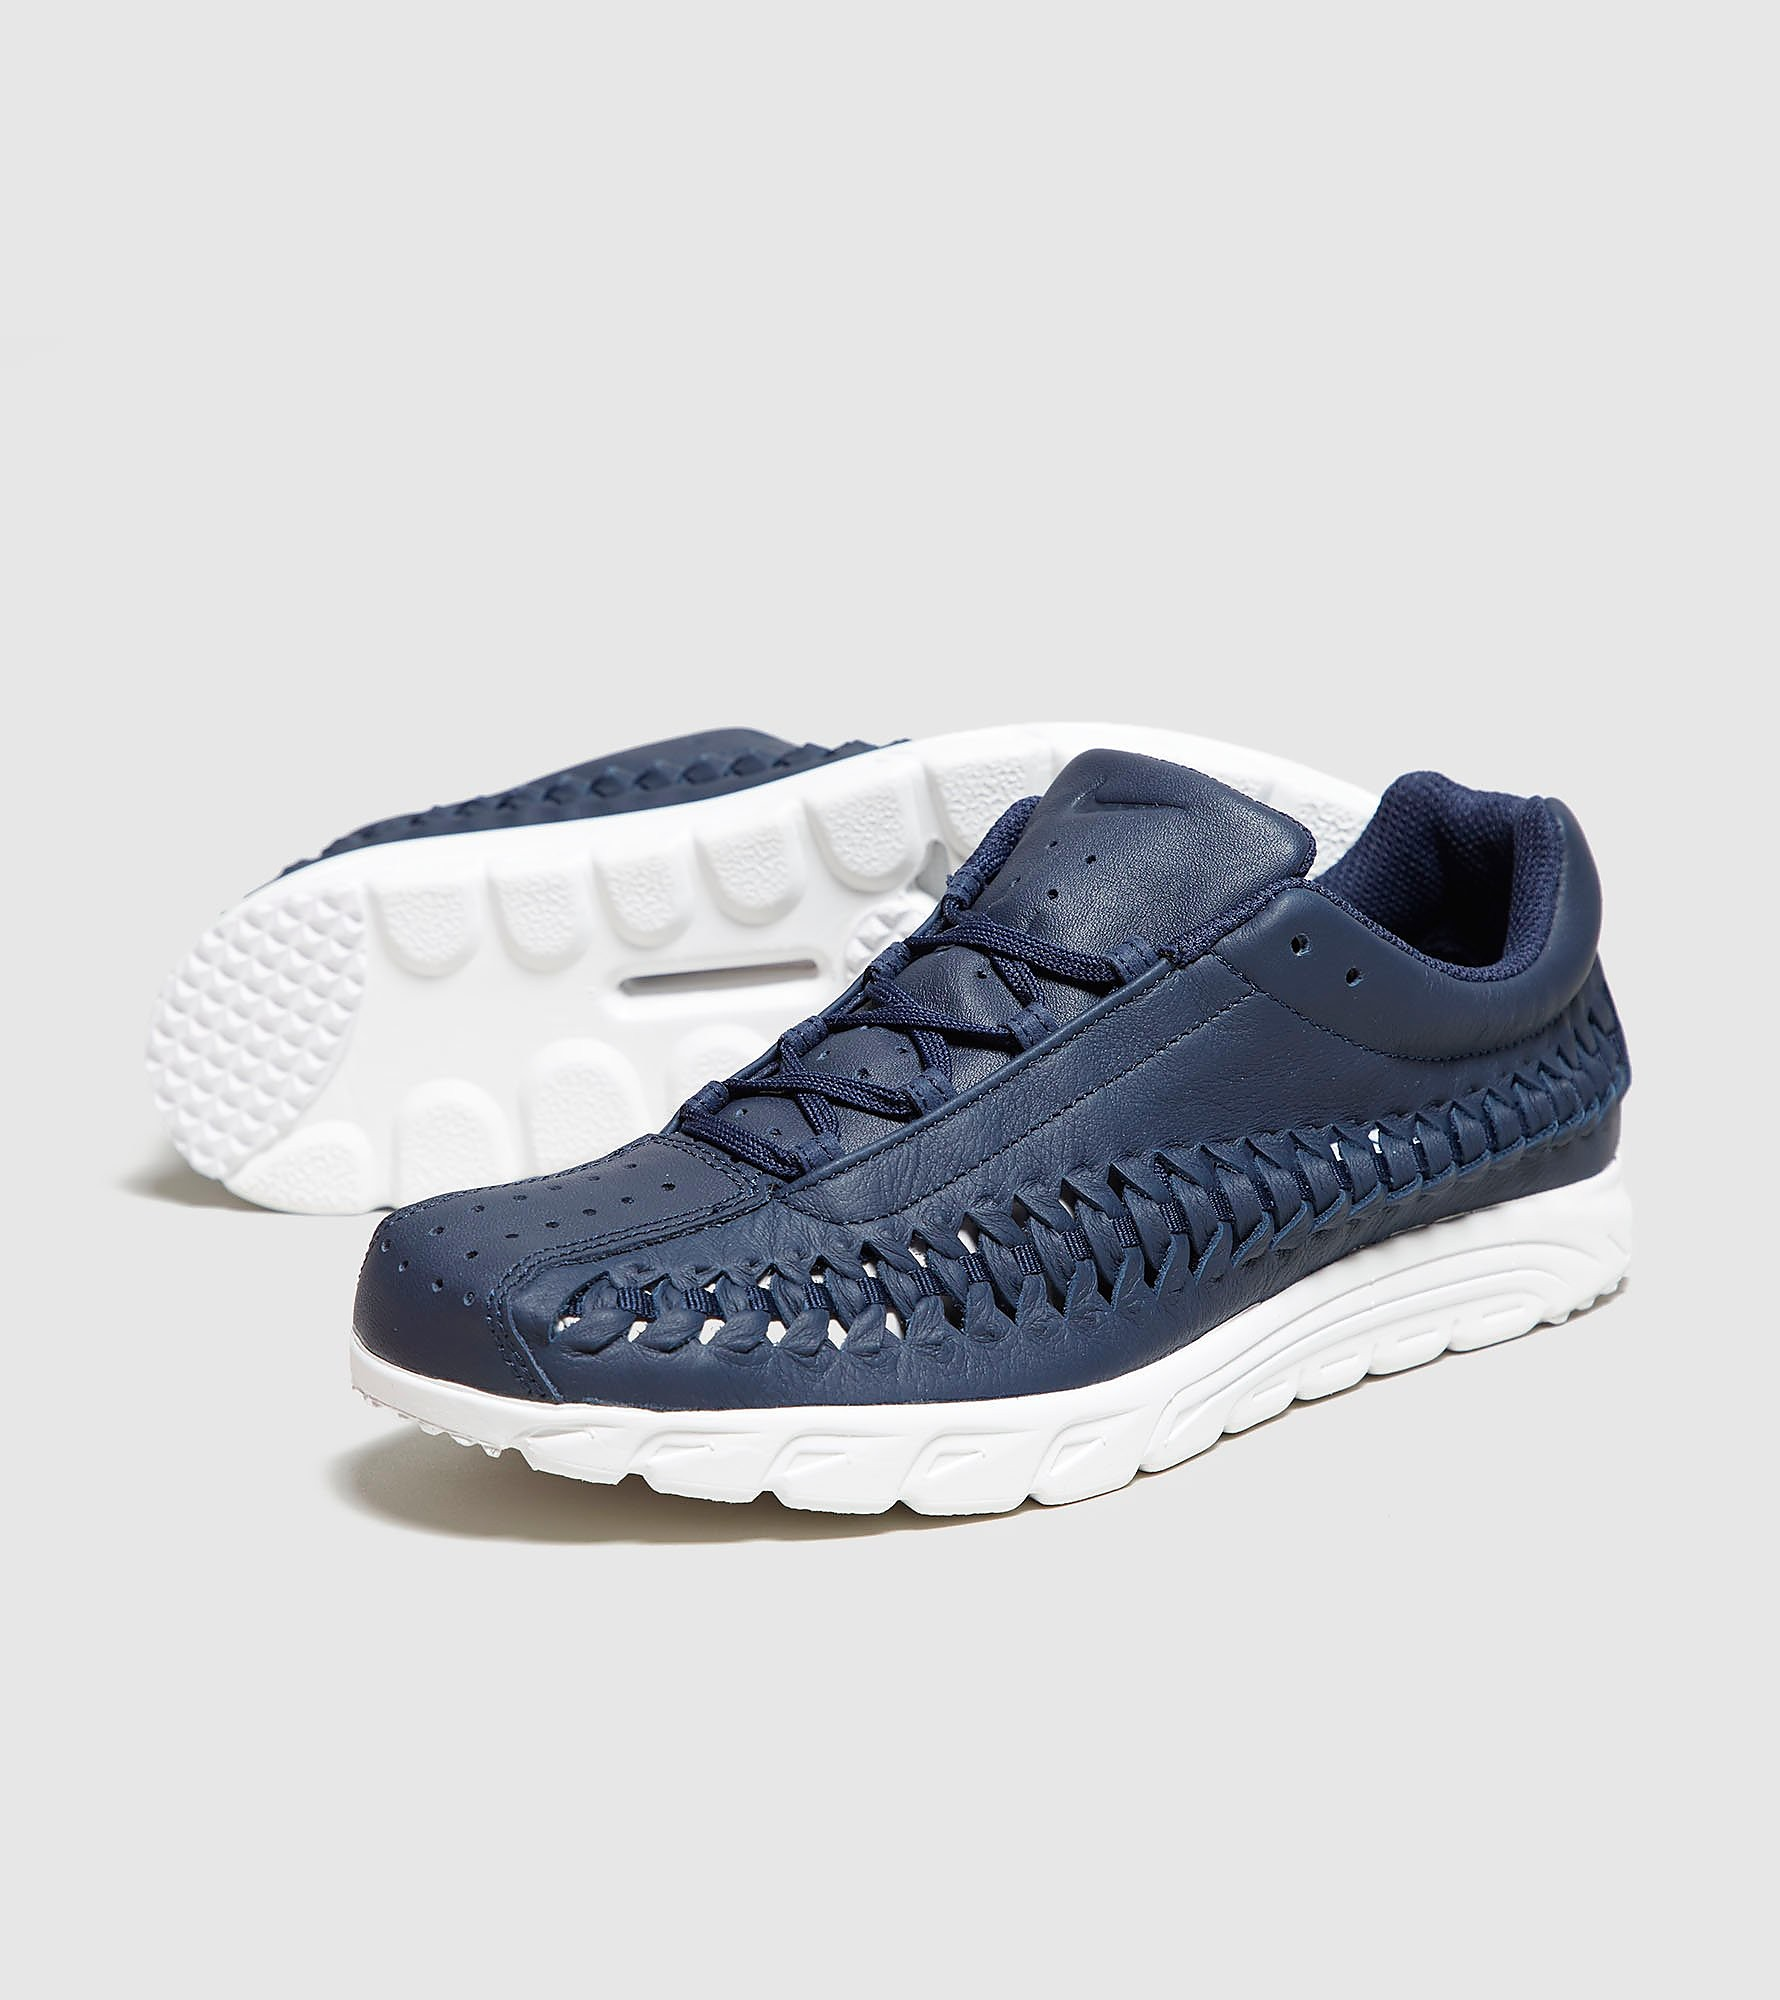 Nike Mayfly Woven Leather